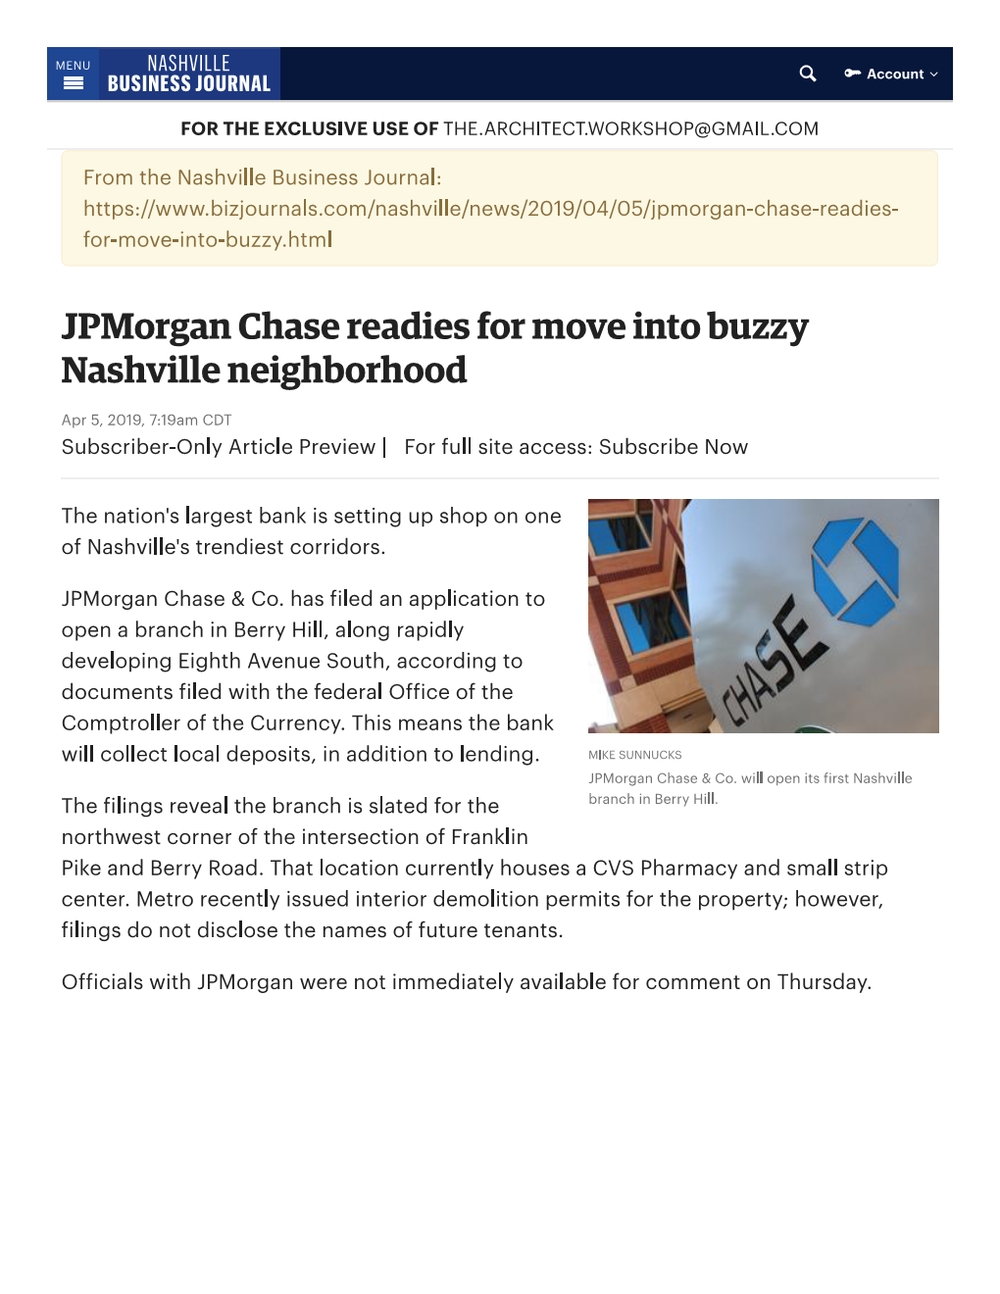 JPMorgan Chase selects Berry Hill for f...le branch - Nashville Business Journal Page 001.png